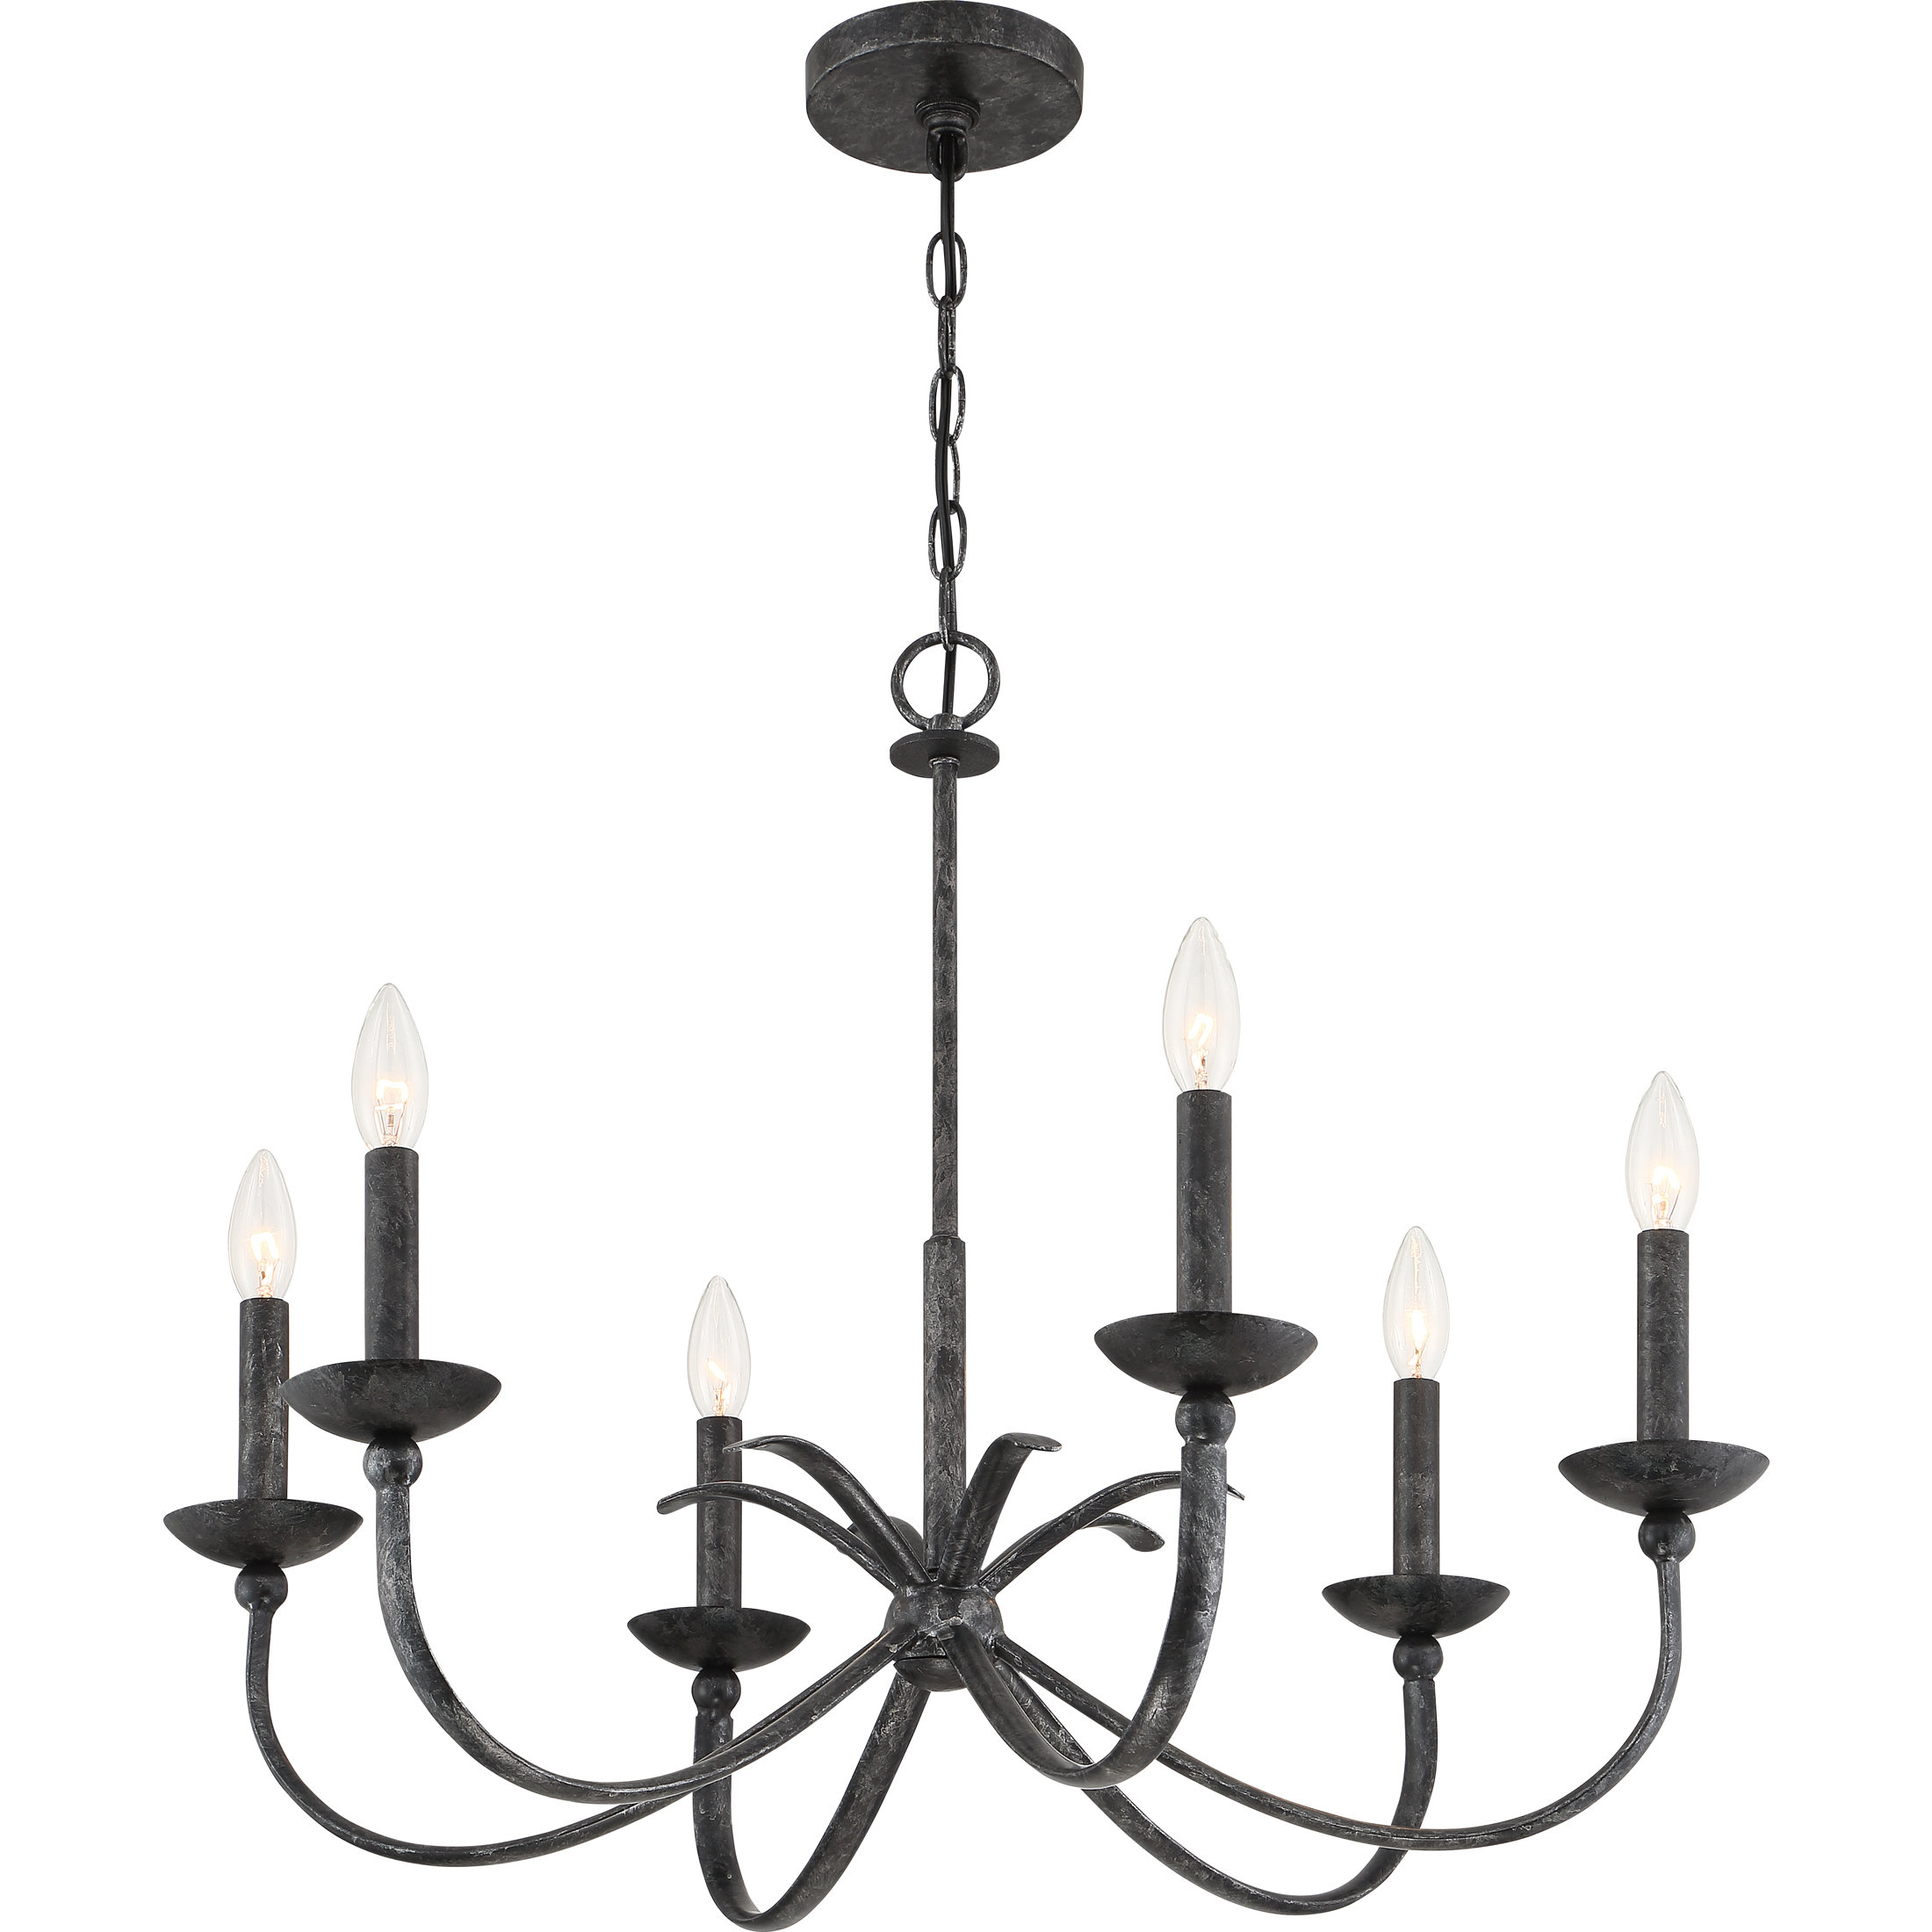 Newest Perseus 6-Light Candle Style Chandeliers regarding Goodin 6-Light Candle Style Chandelier